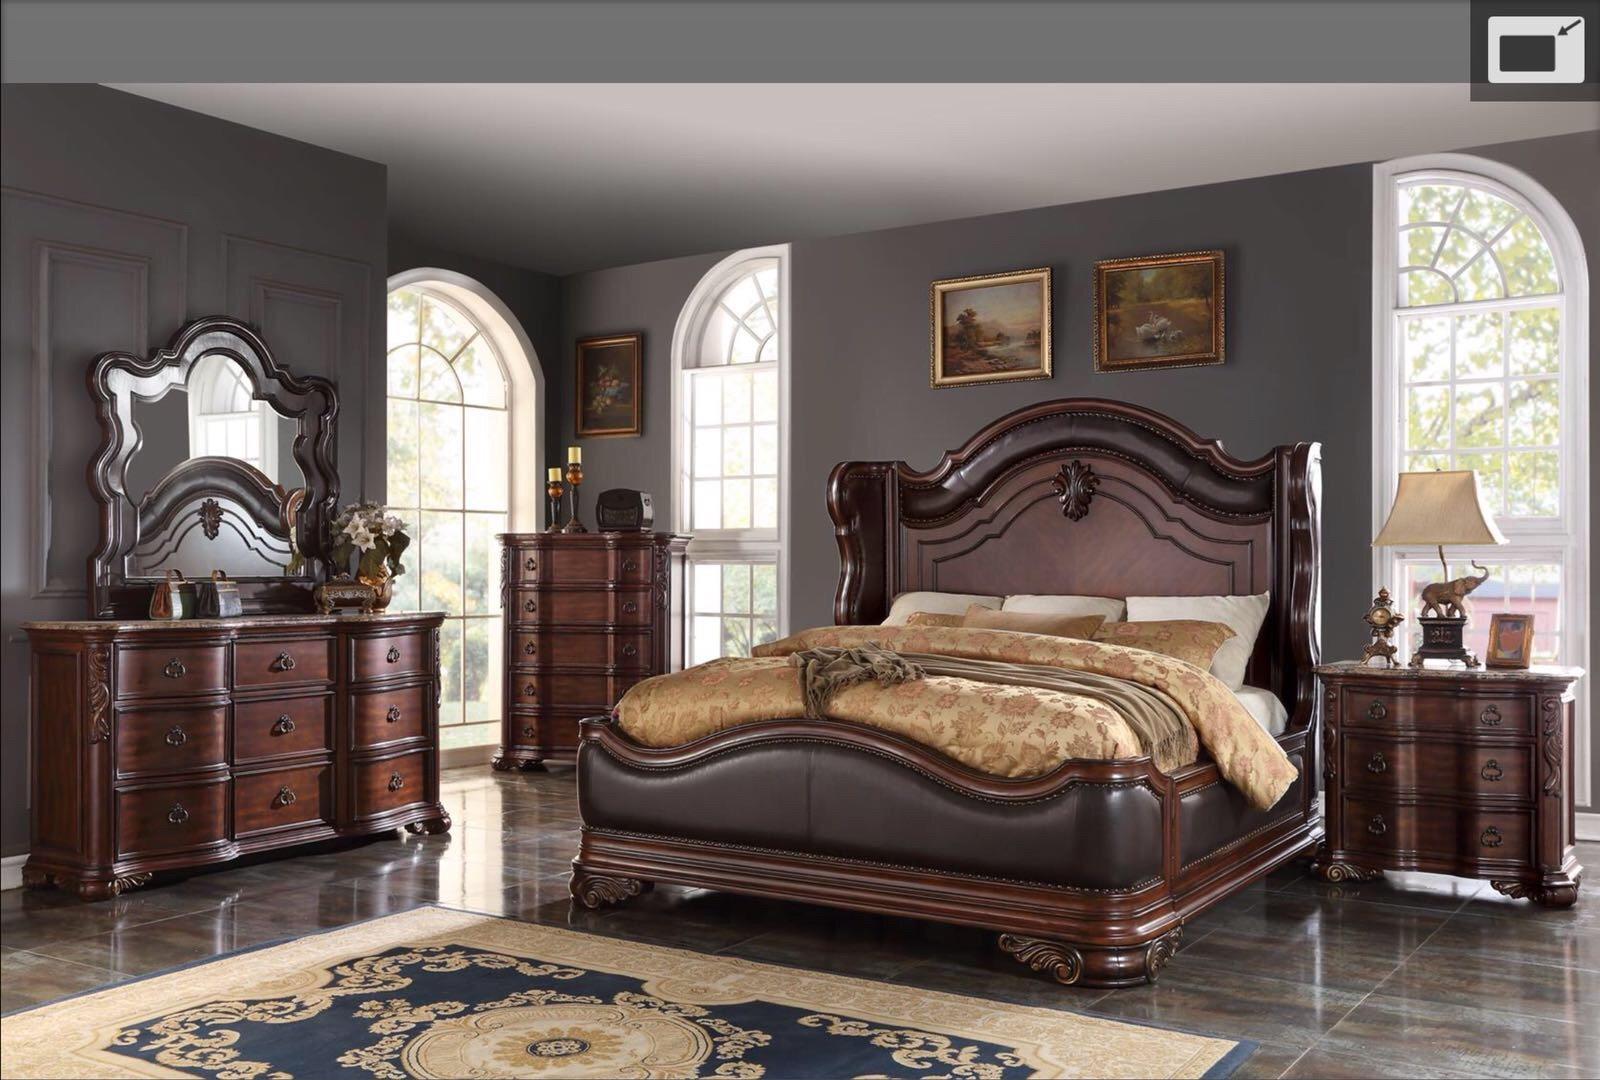 4500 Bedroom Sets For Sale In Miami Fl New HD